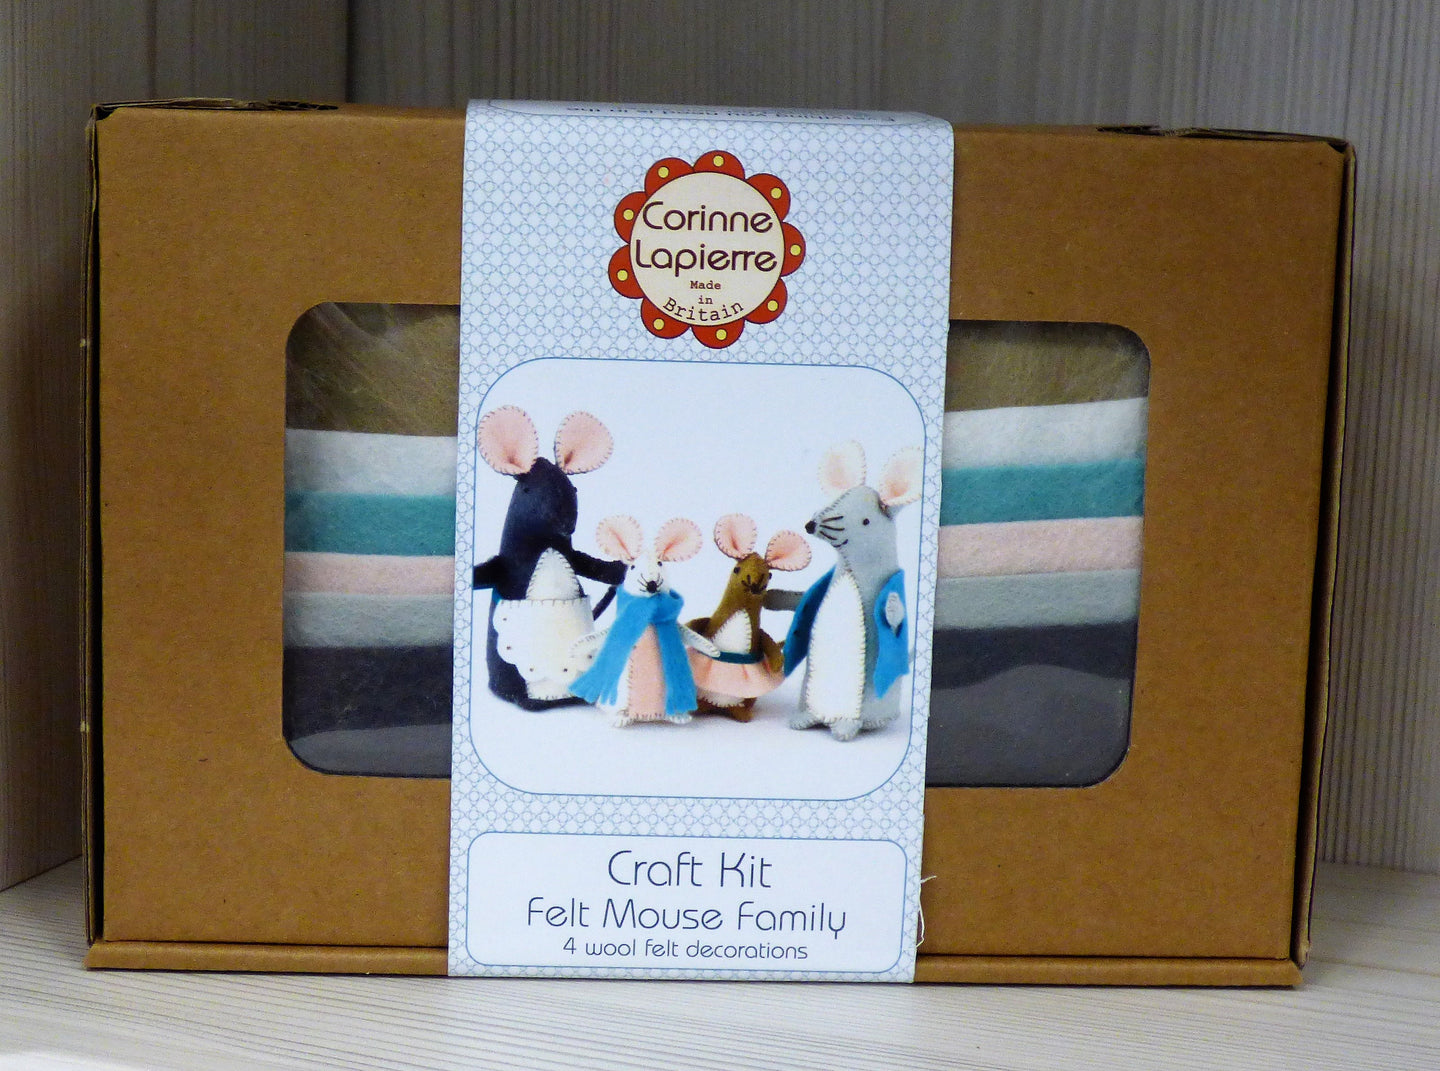 Corinne Lapierre Boxed Wool Felt Craft Kits